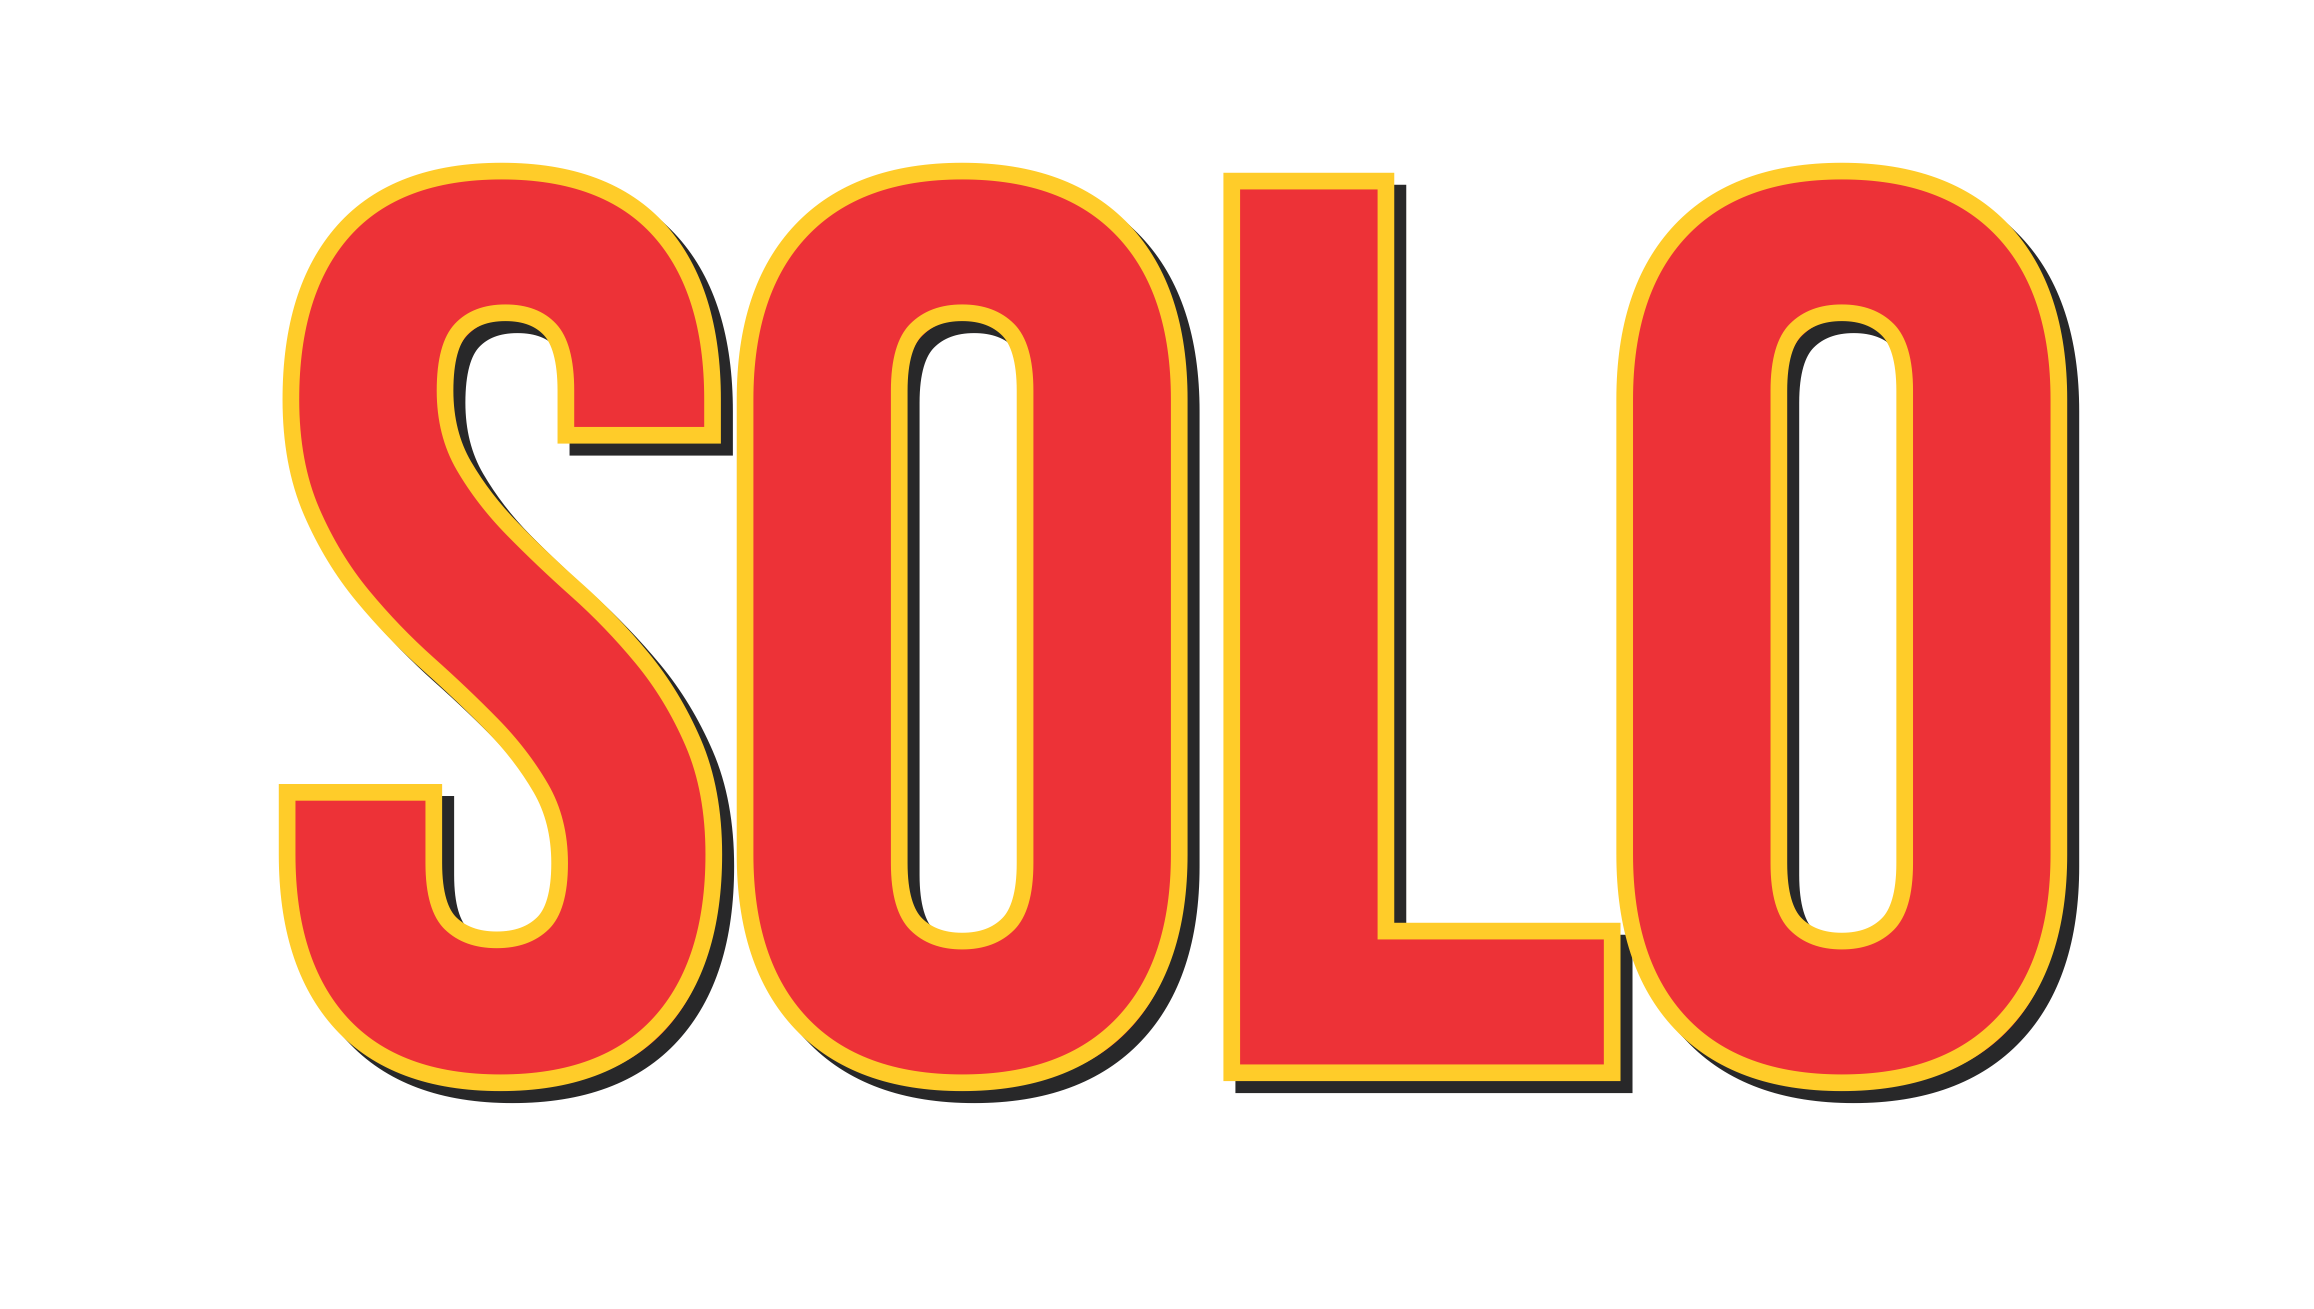 SOLO - is Mental Health Billing and Management made easy. It's designed for mental health professionals of all levels. Currently in Beta testing by one of our clients, it will be available for purchase during the fourth quarter of 2018.